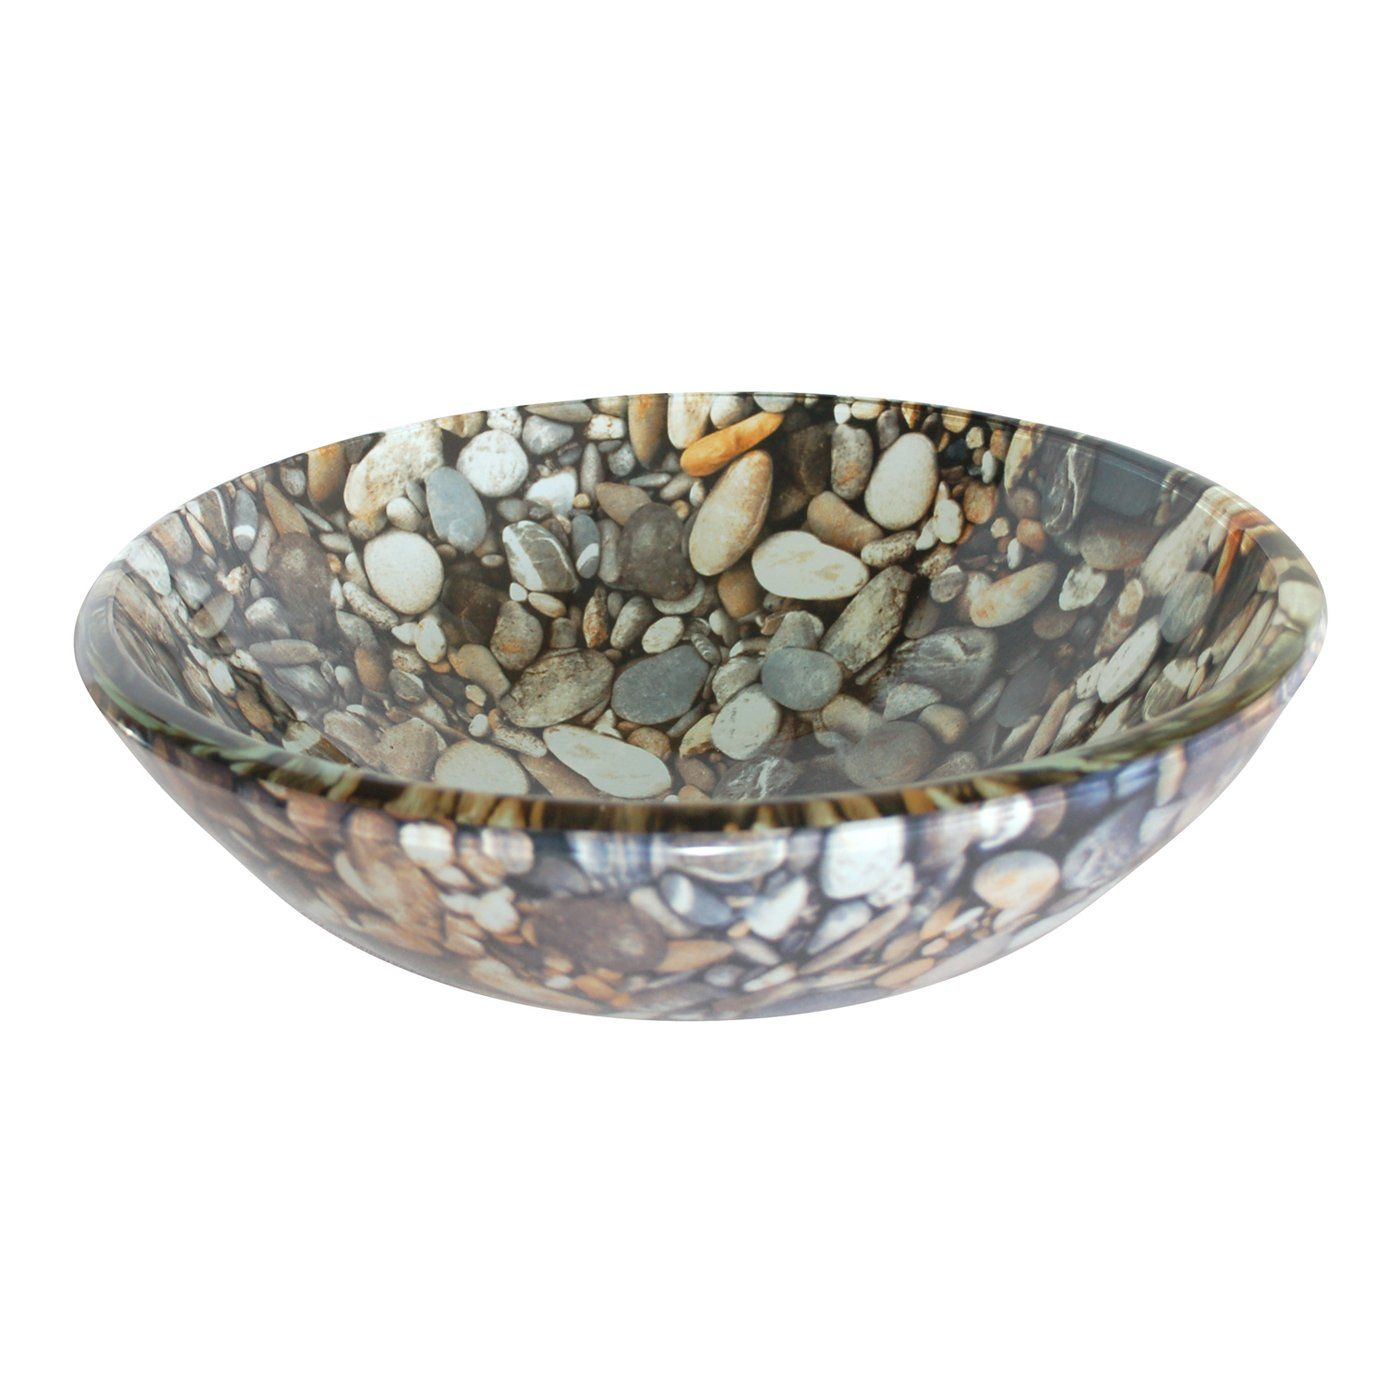 Shop Eden Bath EB_GS24 Natural Pebble Pattern Glass Vessel Sink At ATG  Stores. Browse Our